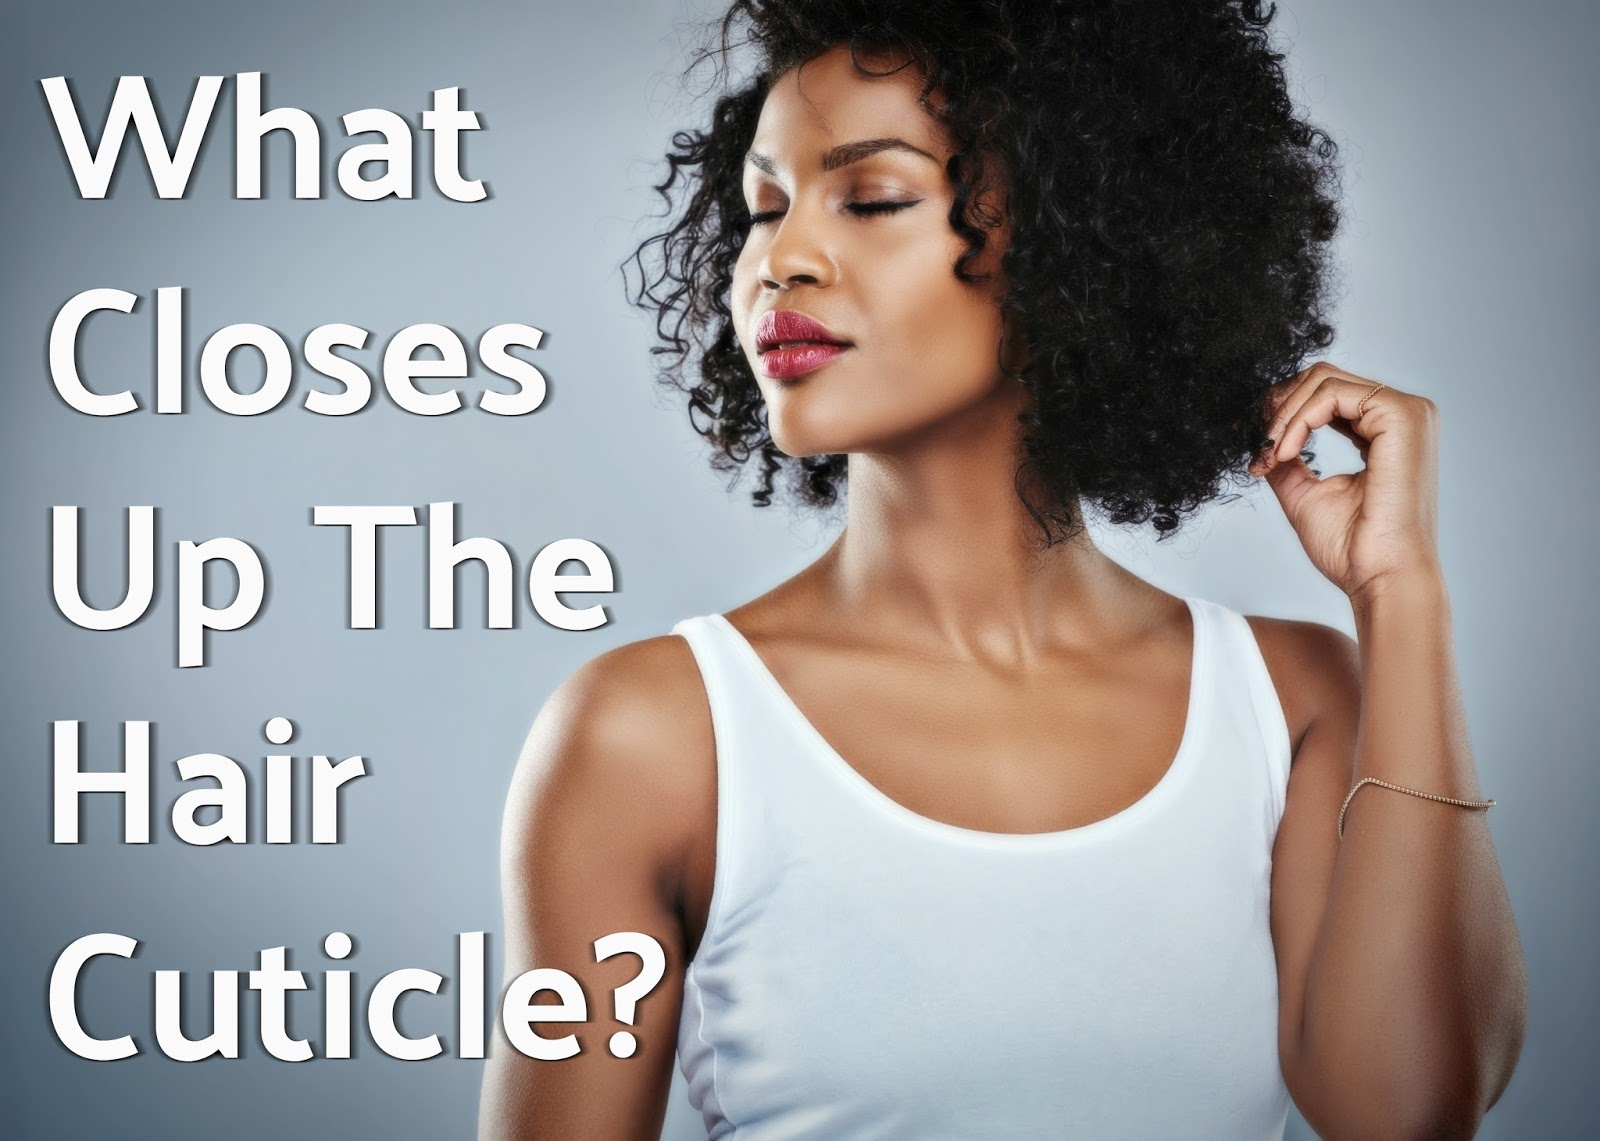 Hair damage is brittle, dry, breaking off strands and quite often your hair cuticle may be the problem. Here's why and what you can do to fix it.